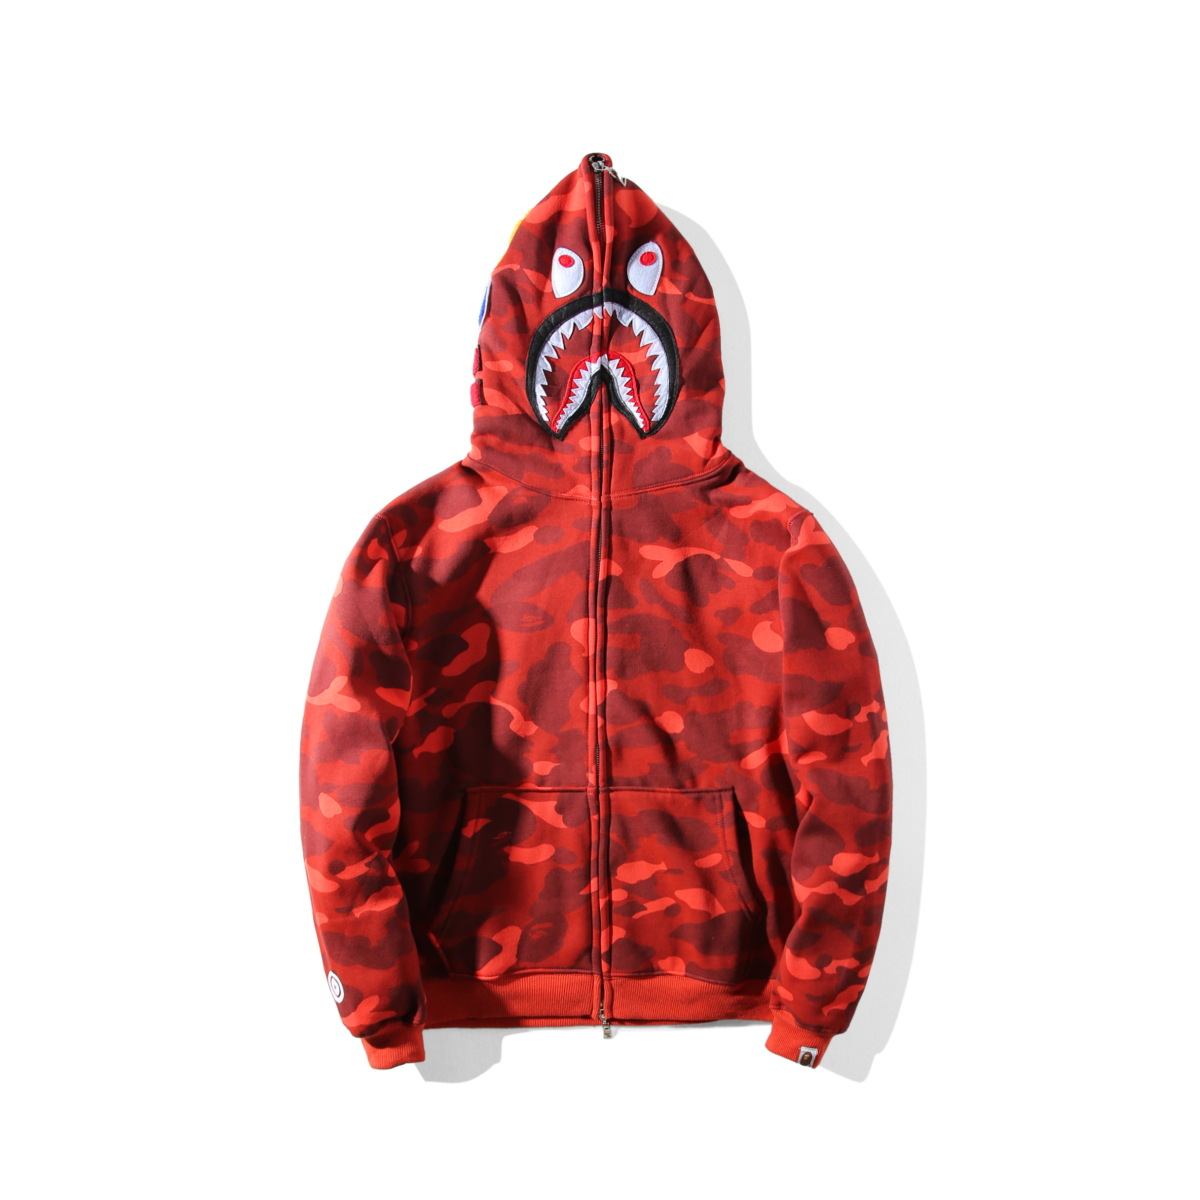 600de3ede4b7 Details about  Bape A Bathing Ape Full Zipper Shark Jaw Red Camo Hoodie  Sweatshirt Coat Jacket